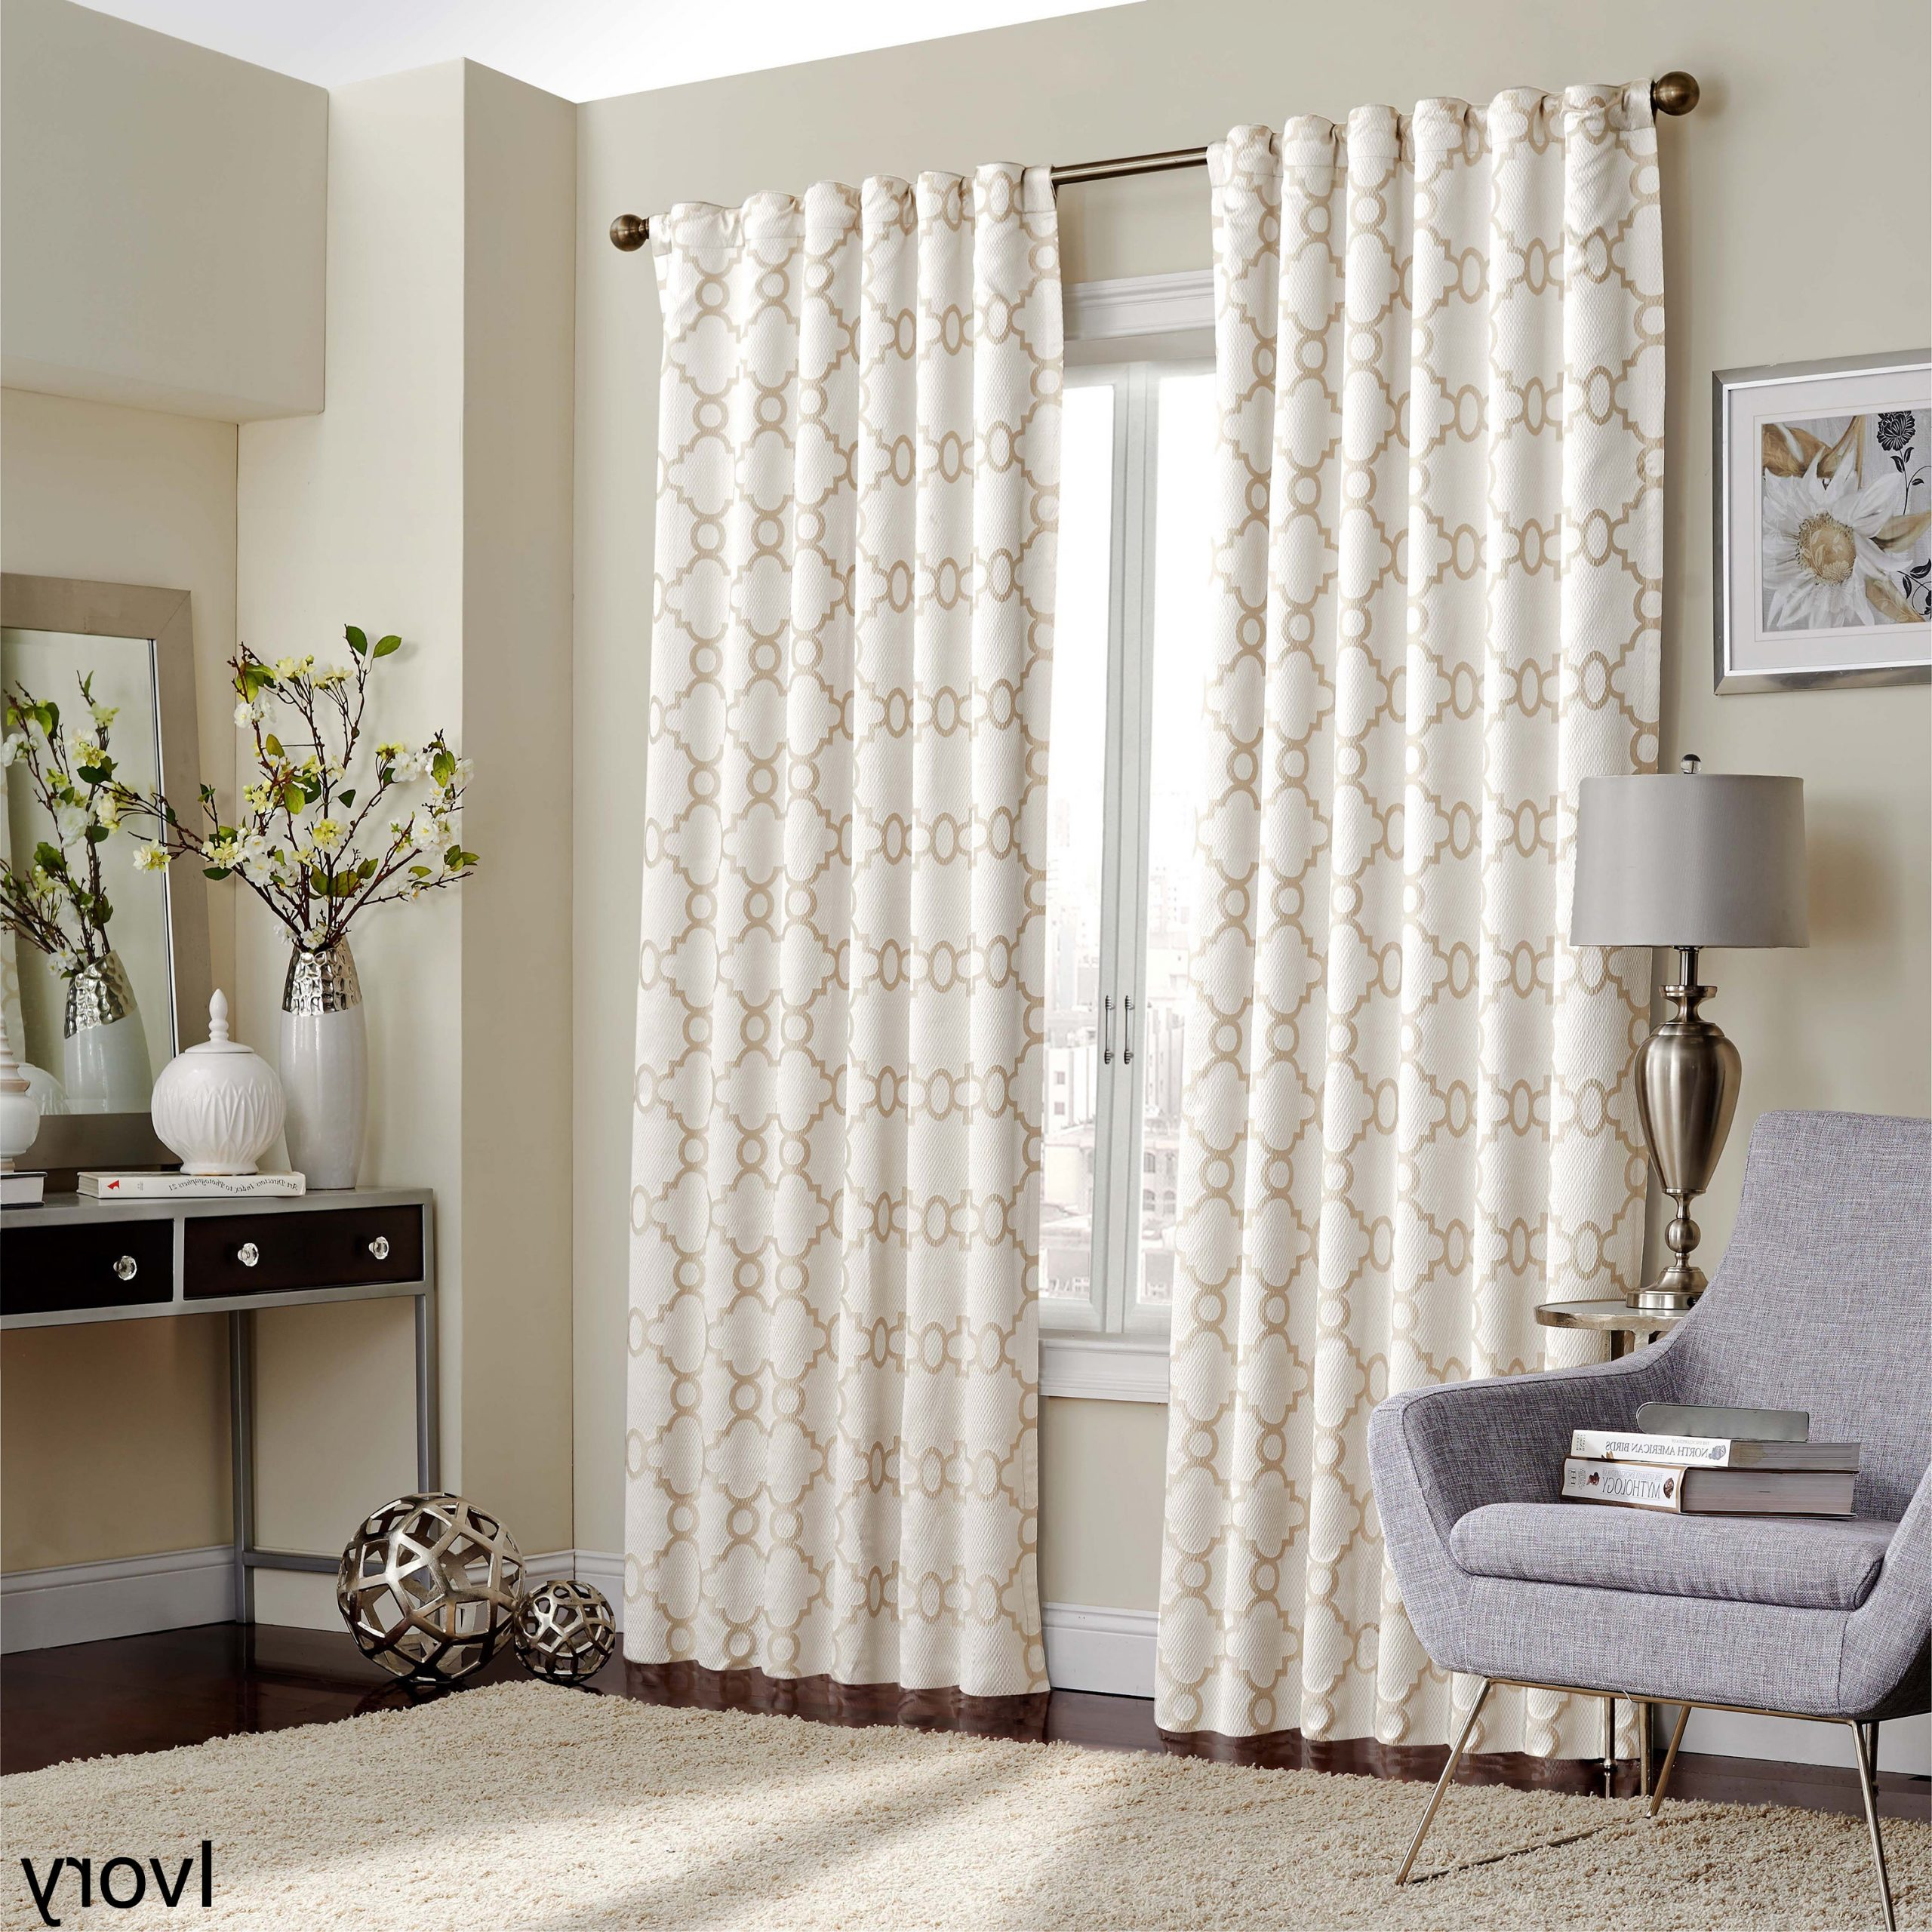 Eclipse Correll Thermalayer Blackout Window Curtain Panel For Most Up To Date Eclipse Caprese Thermalayer Blackout Window Curtains (Gallery 16 of 20)